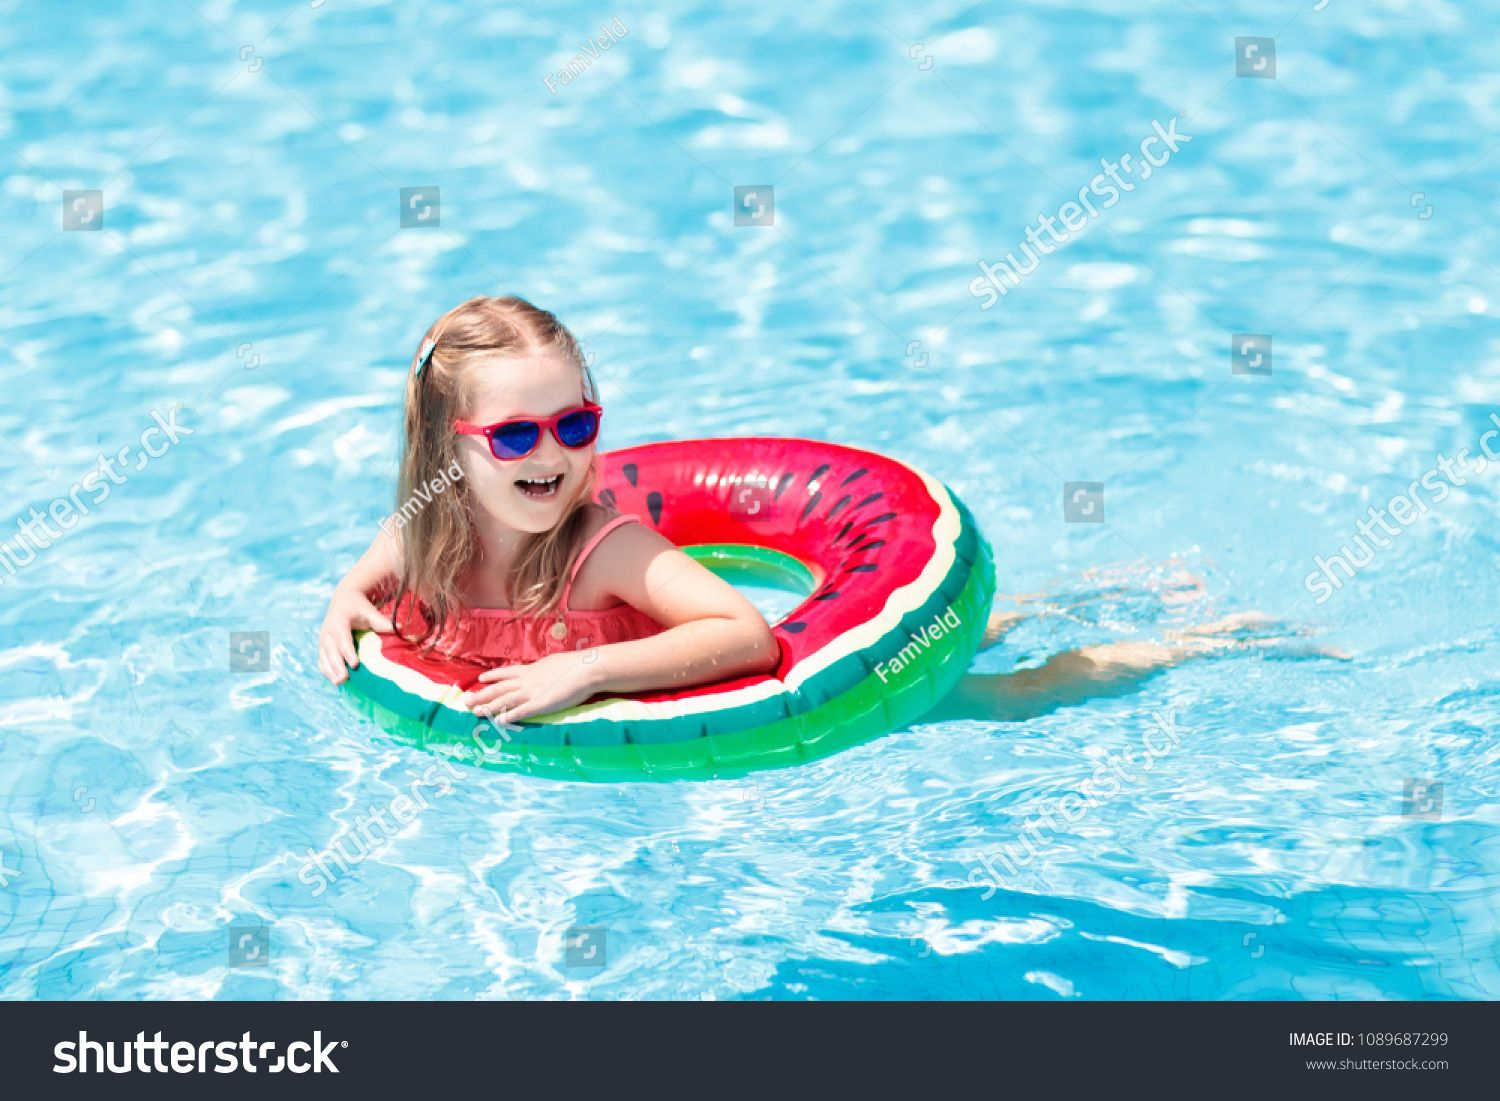 Child with watermelon inflatable ring in swimming pool